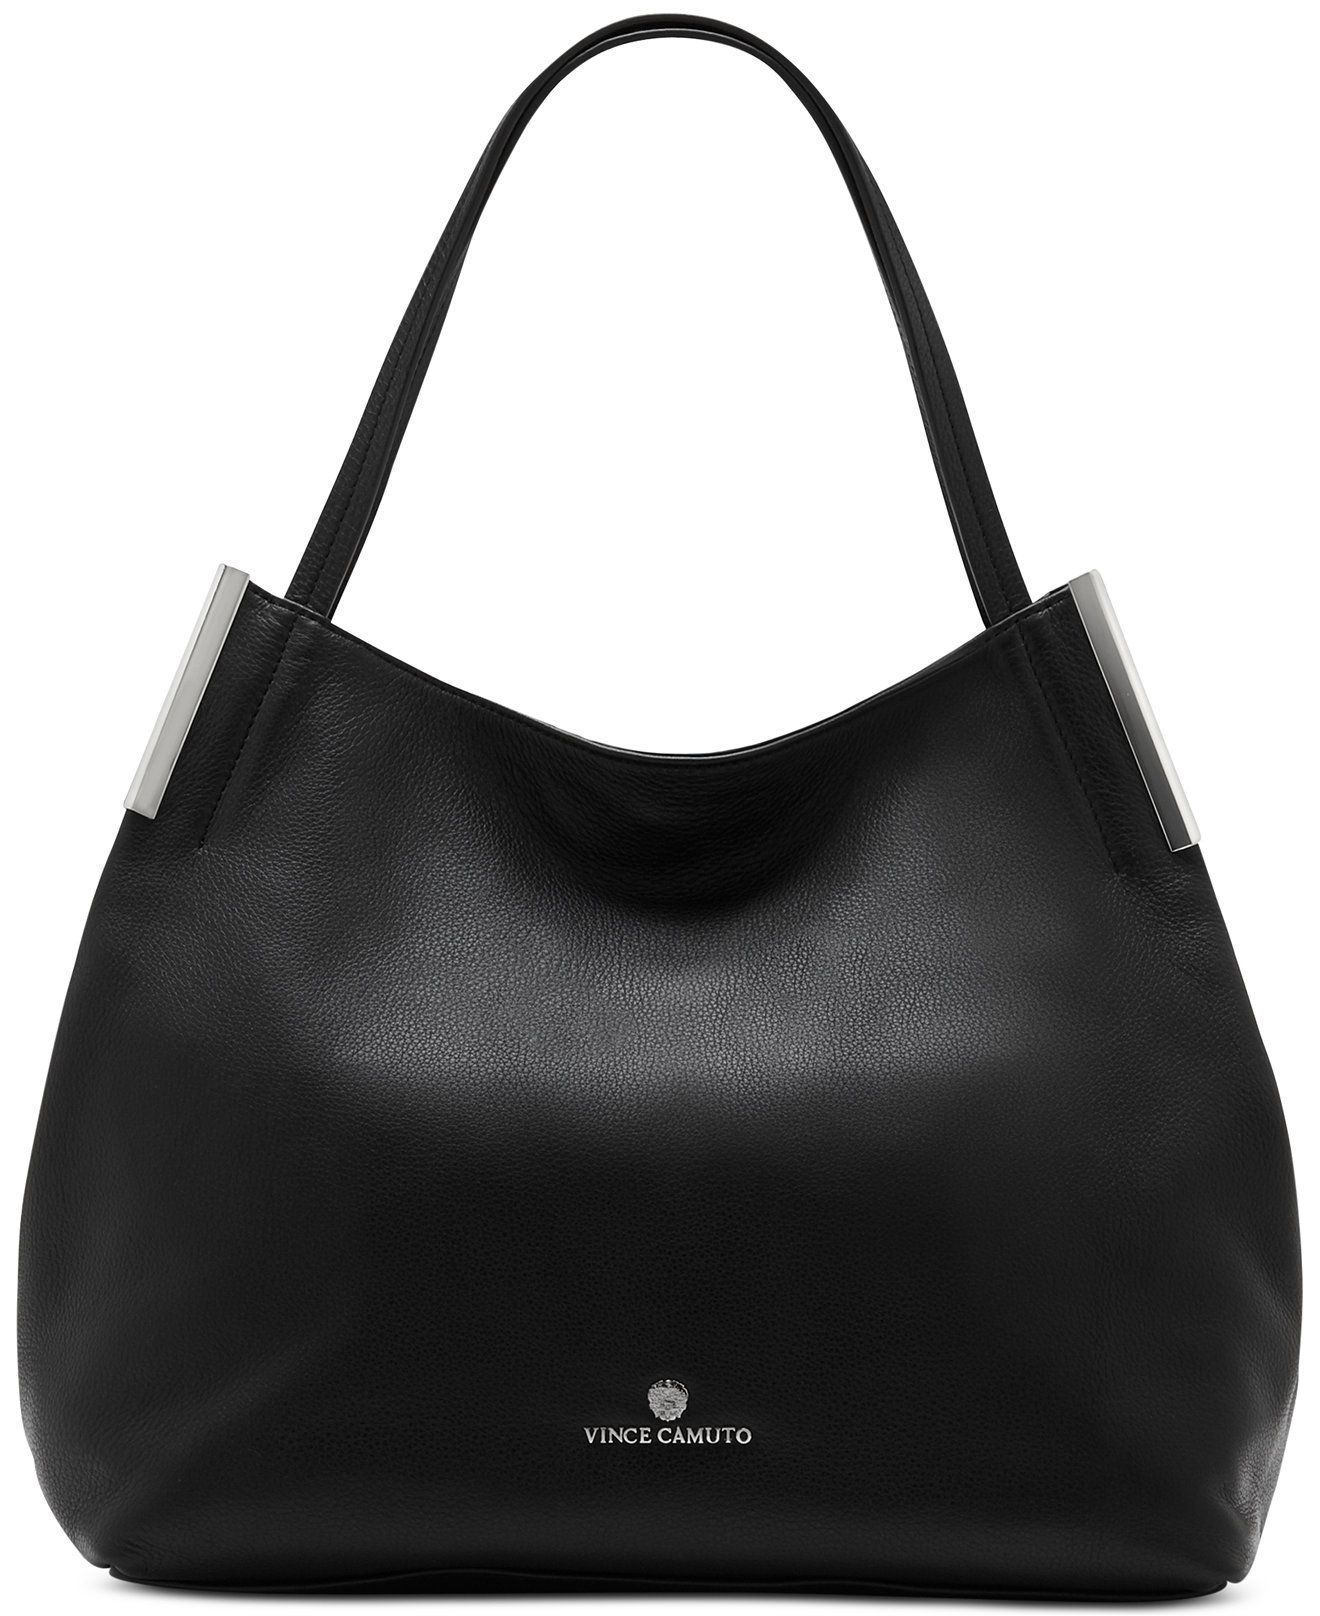 49a1af3e2 Roomy, sophisticated and top pinned: the Vince Camuto Tina Tote ...